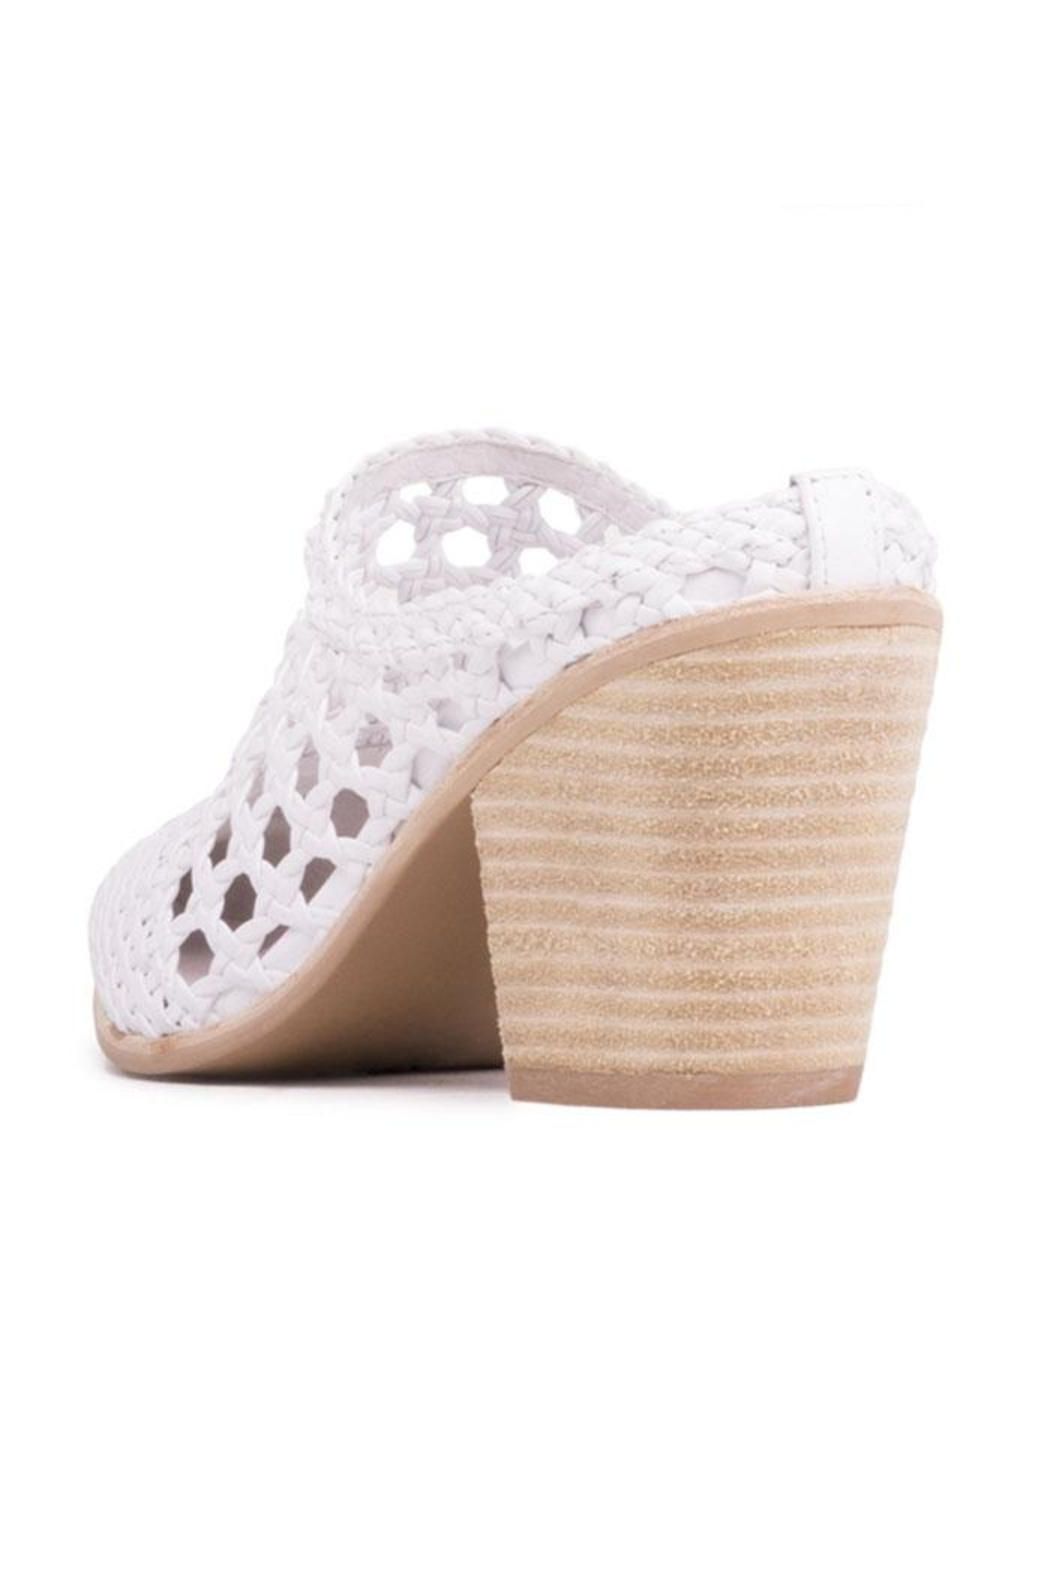 Jeffrey Campbell White Woven Mule - Side Cropped Image